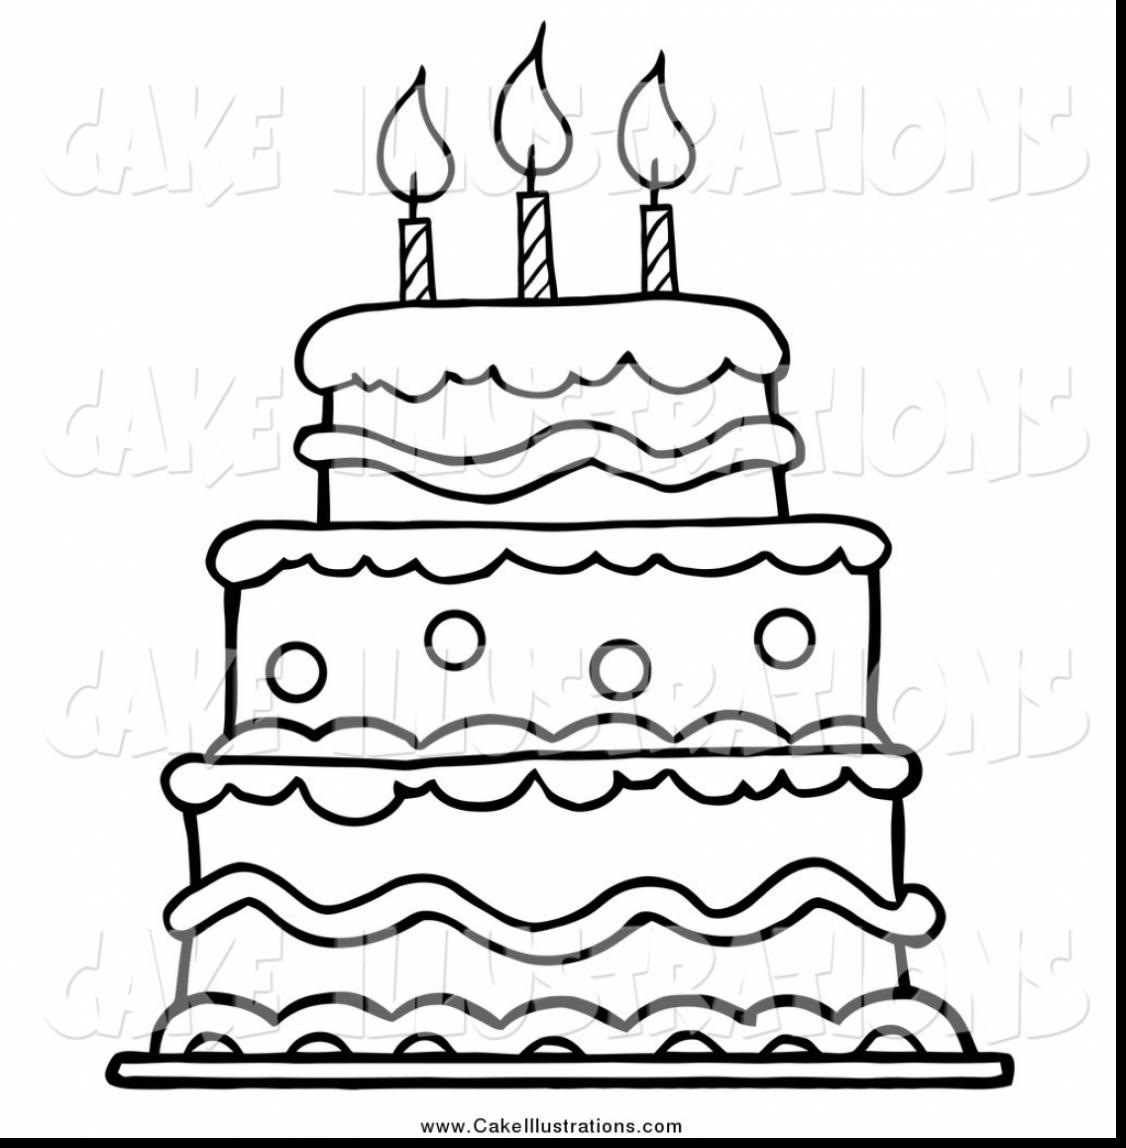 1126x1148 Cute Birthday Cake Coloring Page Excellent Pages For Kids Picture